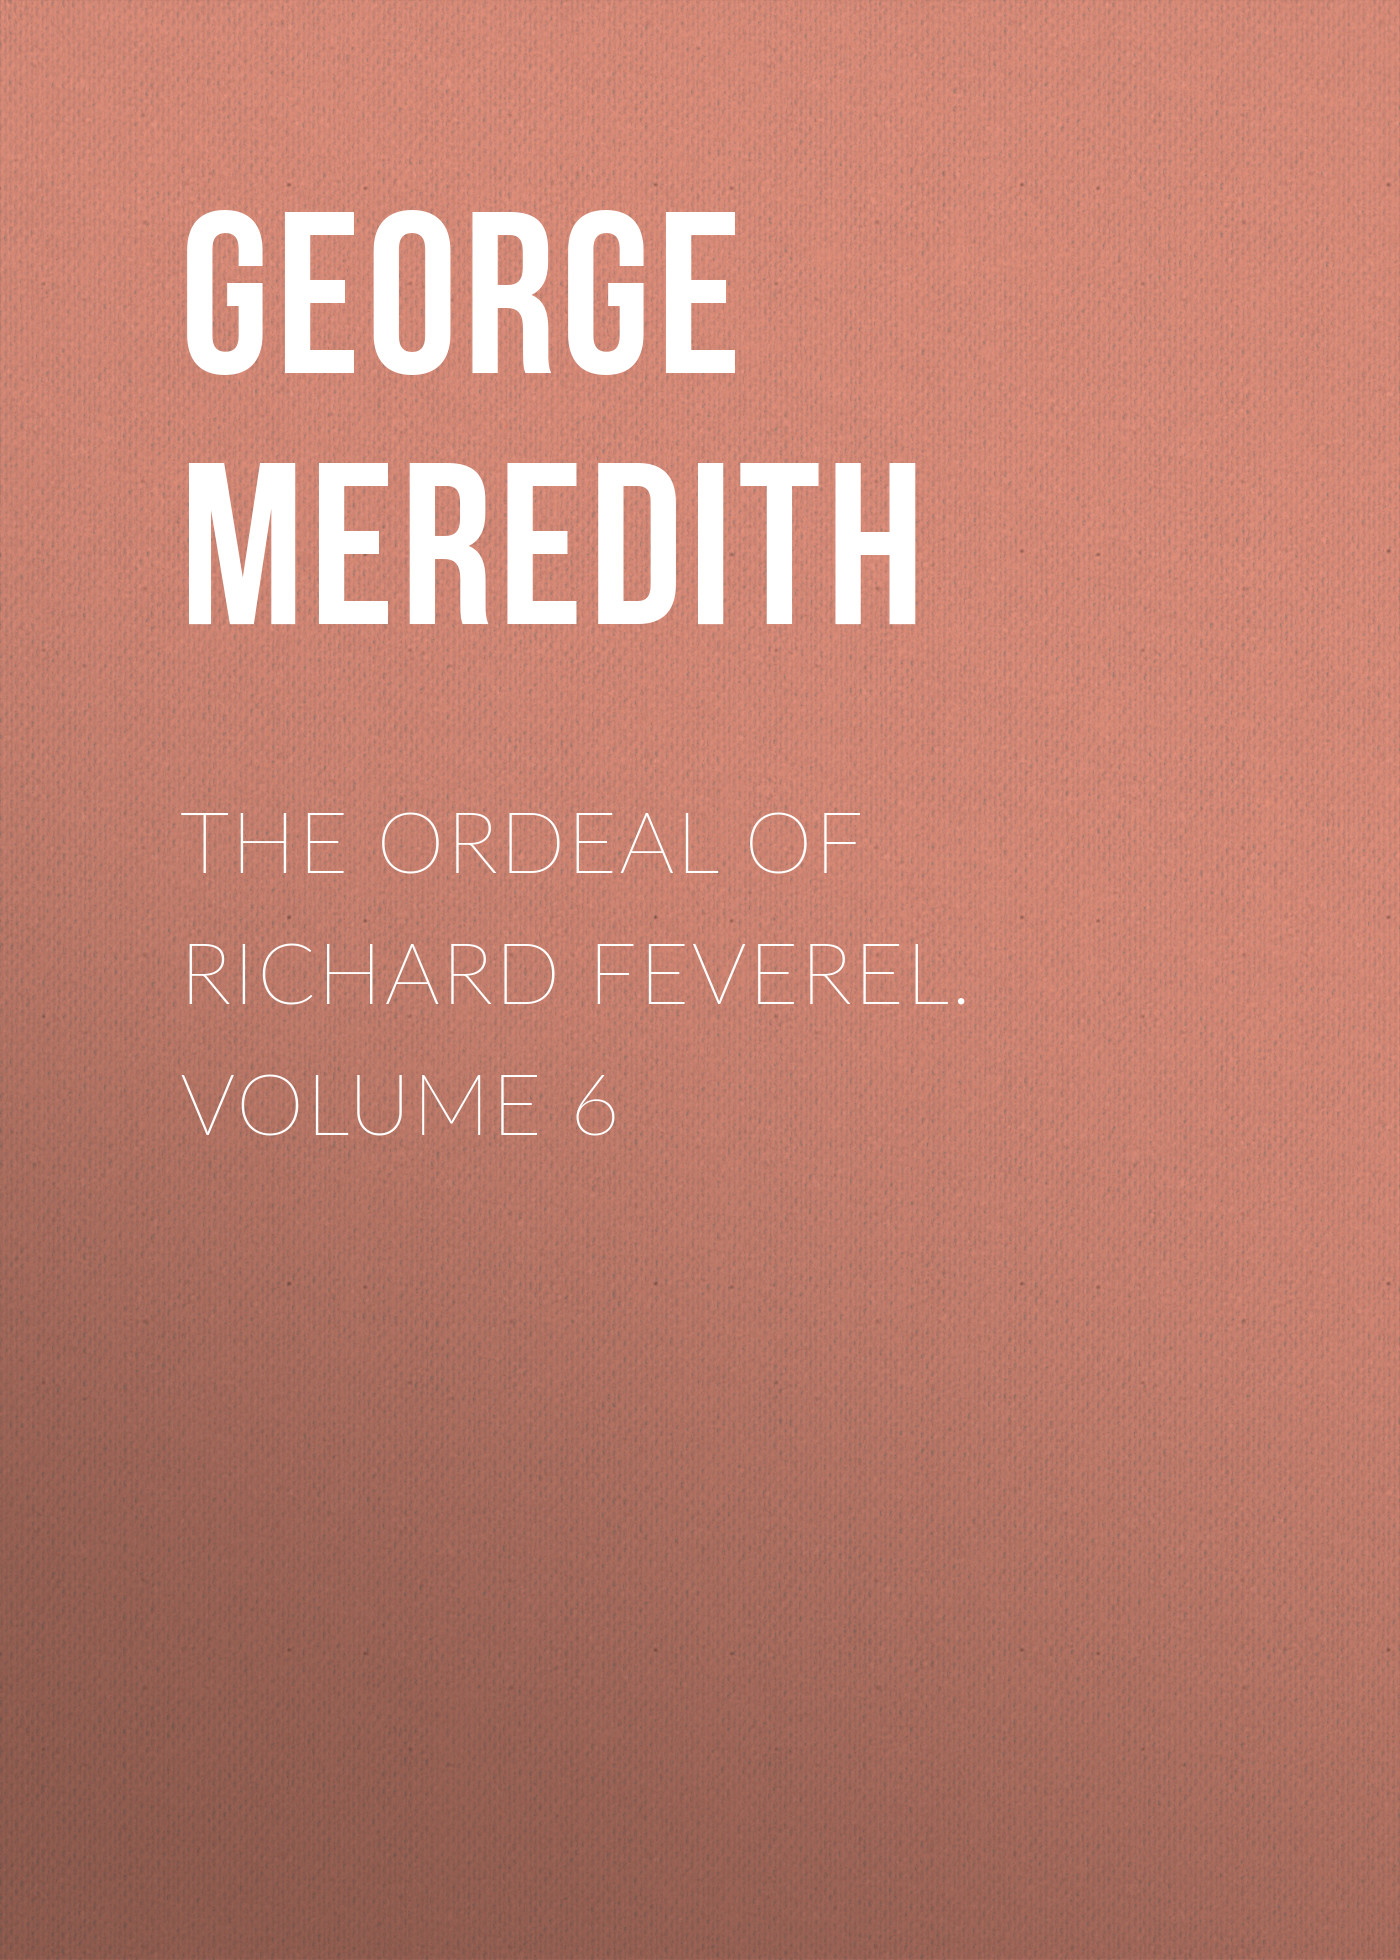 цена George Meredith The Ordeal of Richard Feverel. Volume 6 в интернет-магазинах